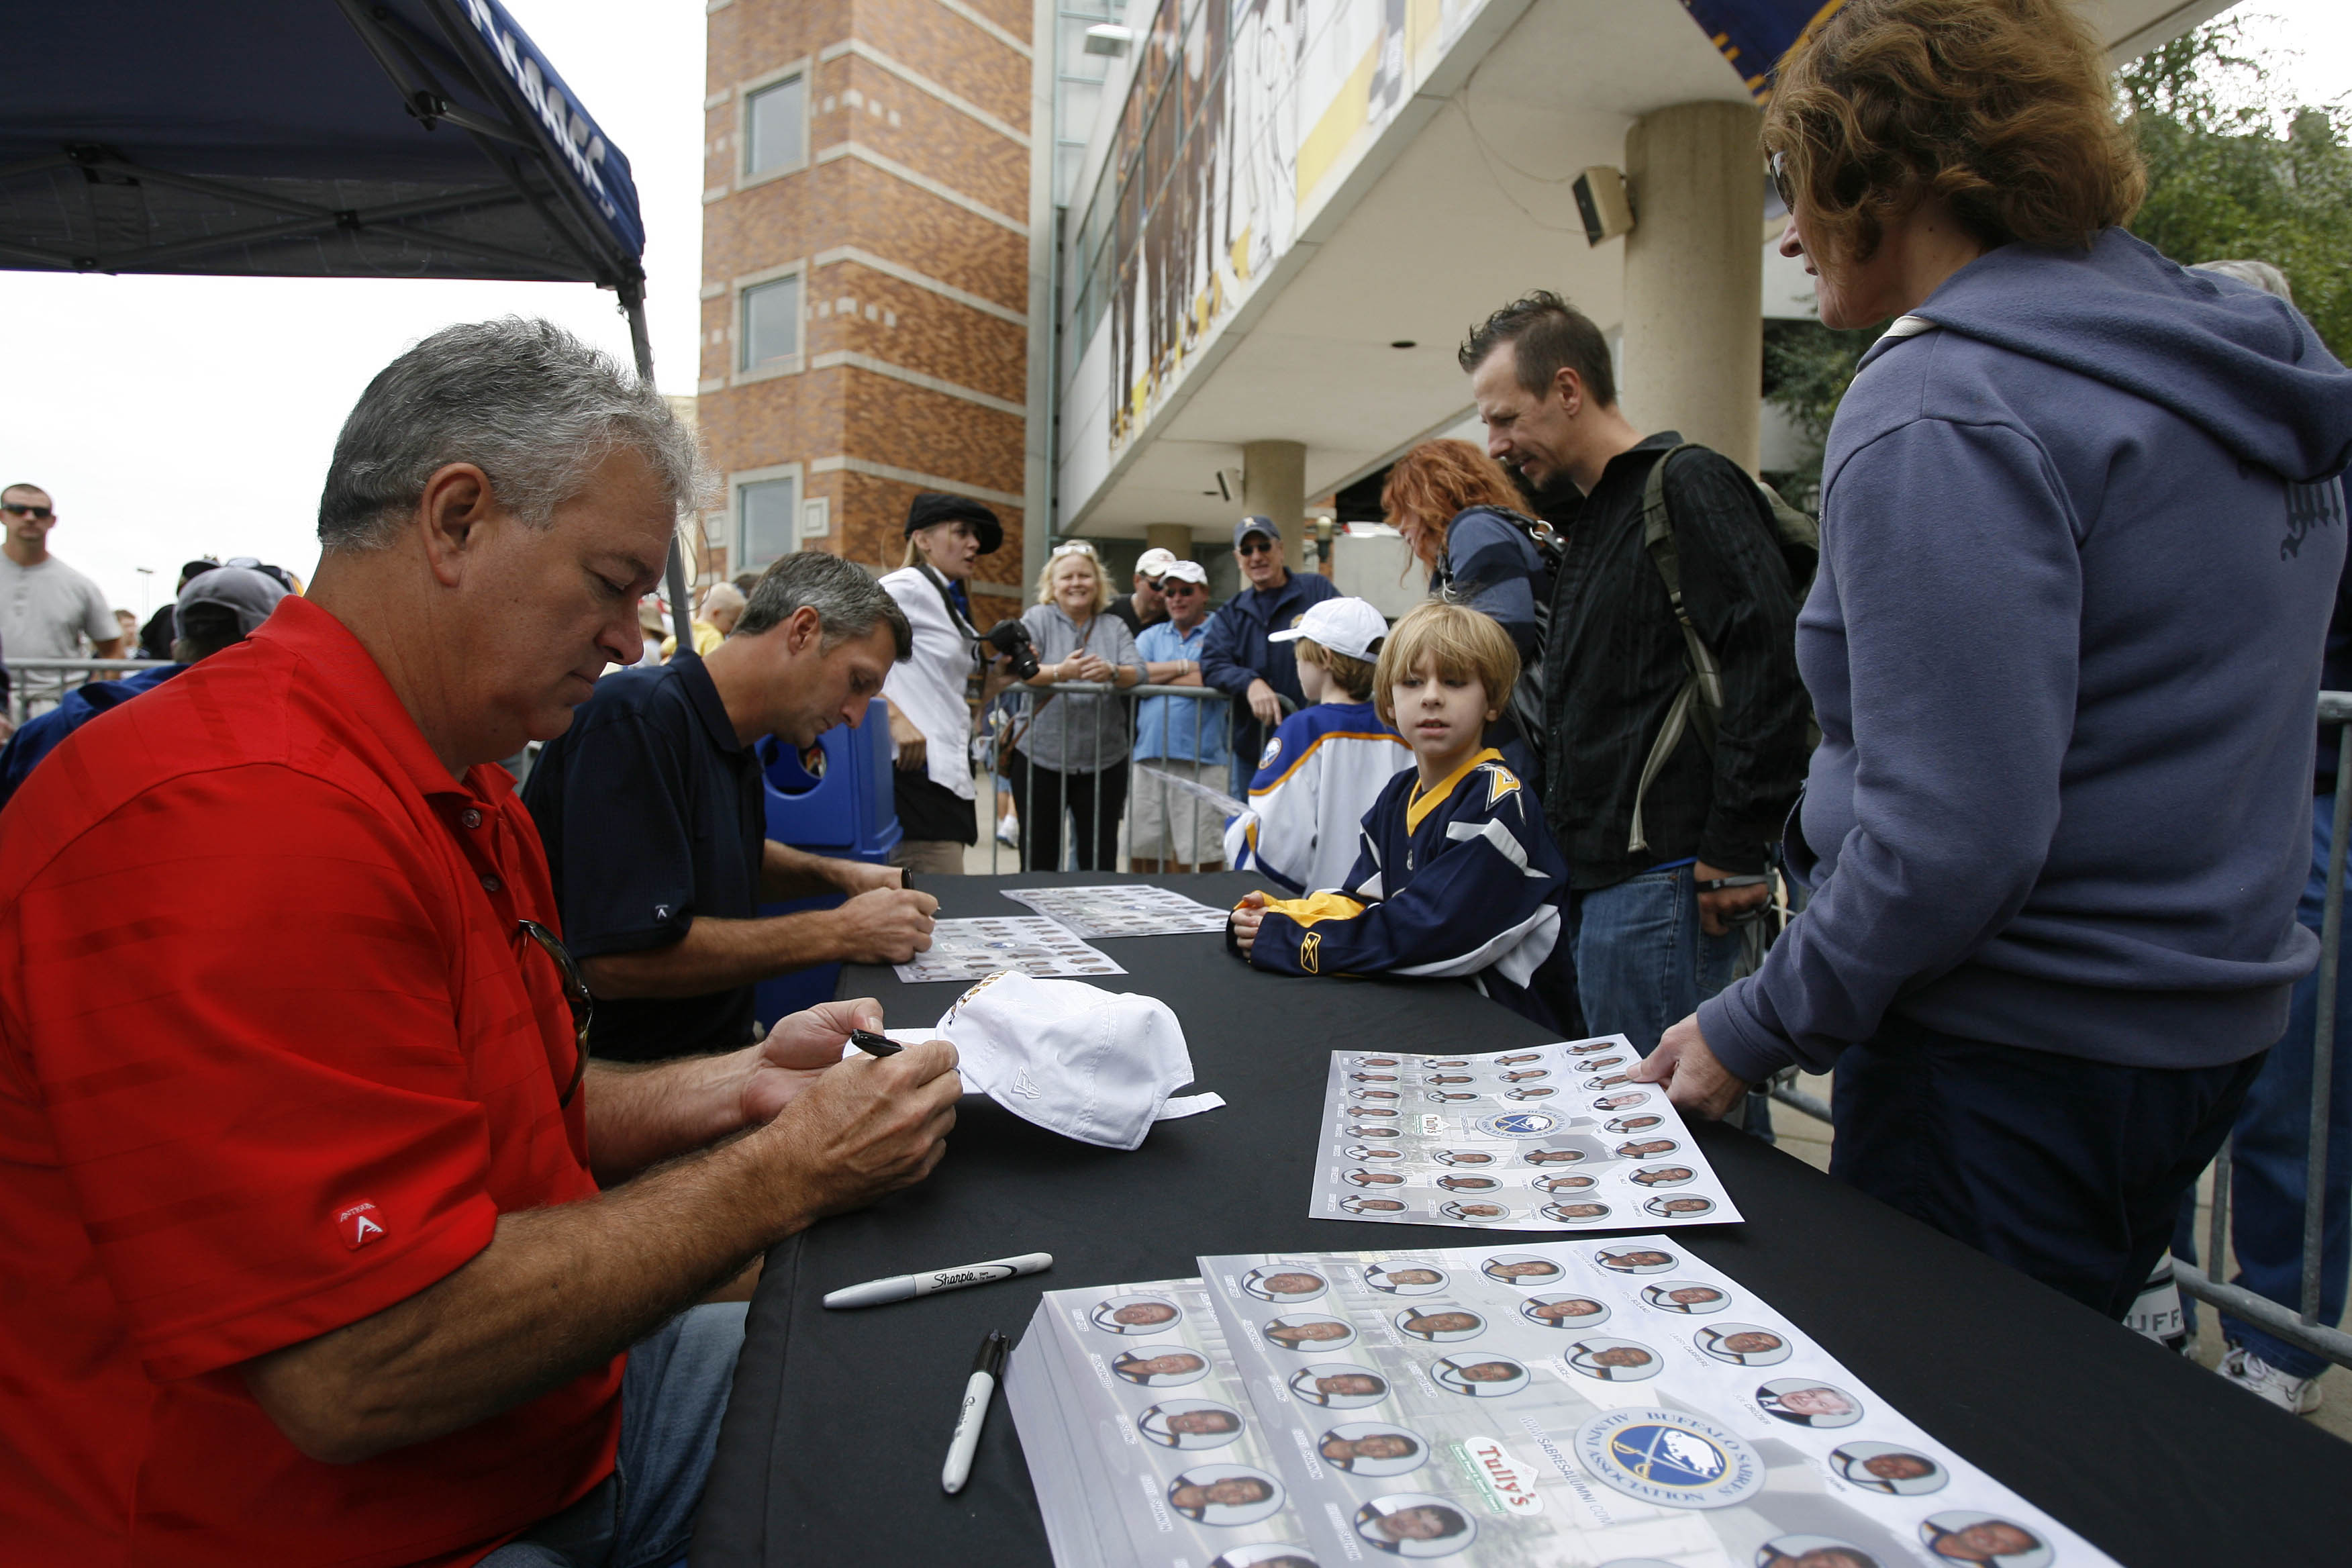 Richie Dunn, left, and Darryl Shannon sign autographs for fans during Puck Drop 2010 at the HSBC Arena (Mark Mulville/Buffalo News)